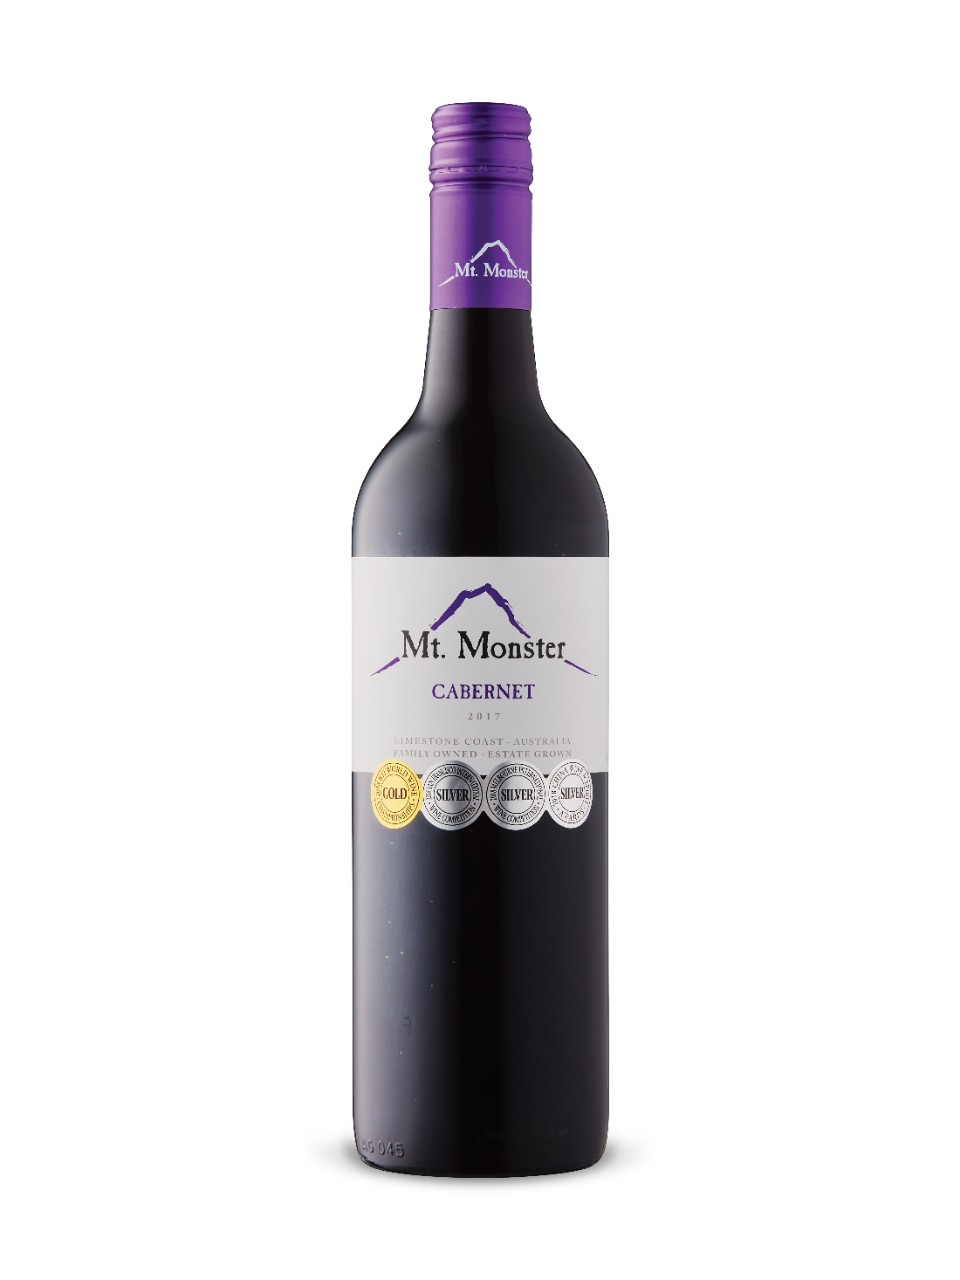 Mt. Monster Cabernet 2017 from LCBO